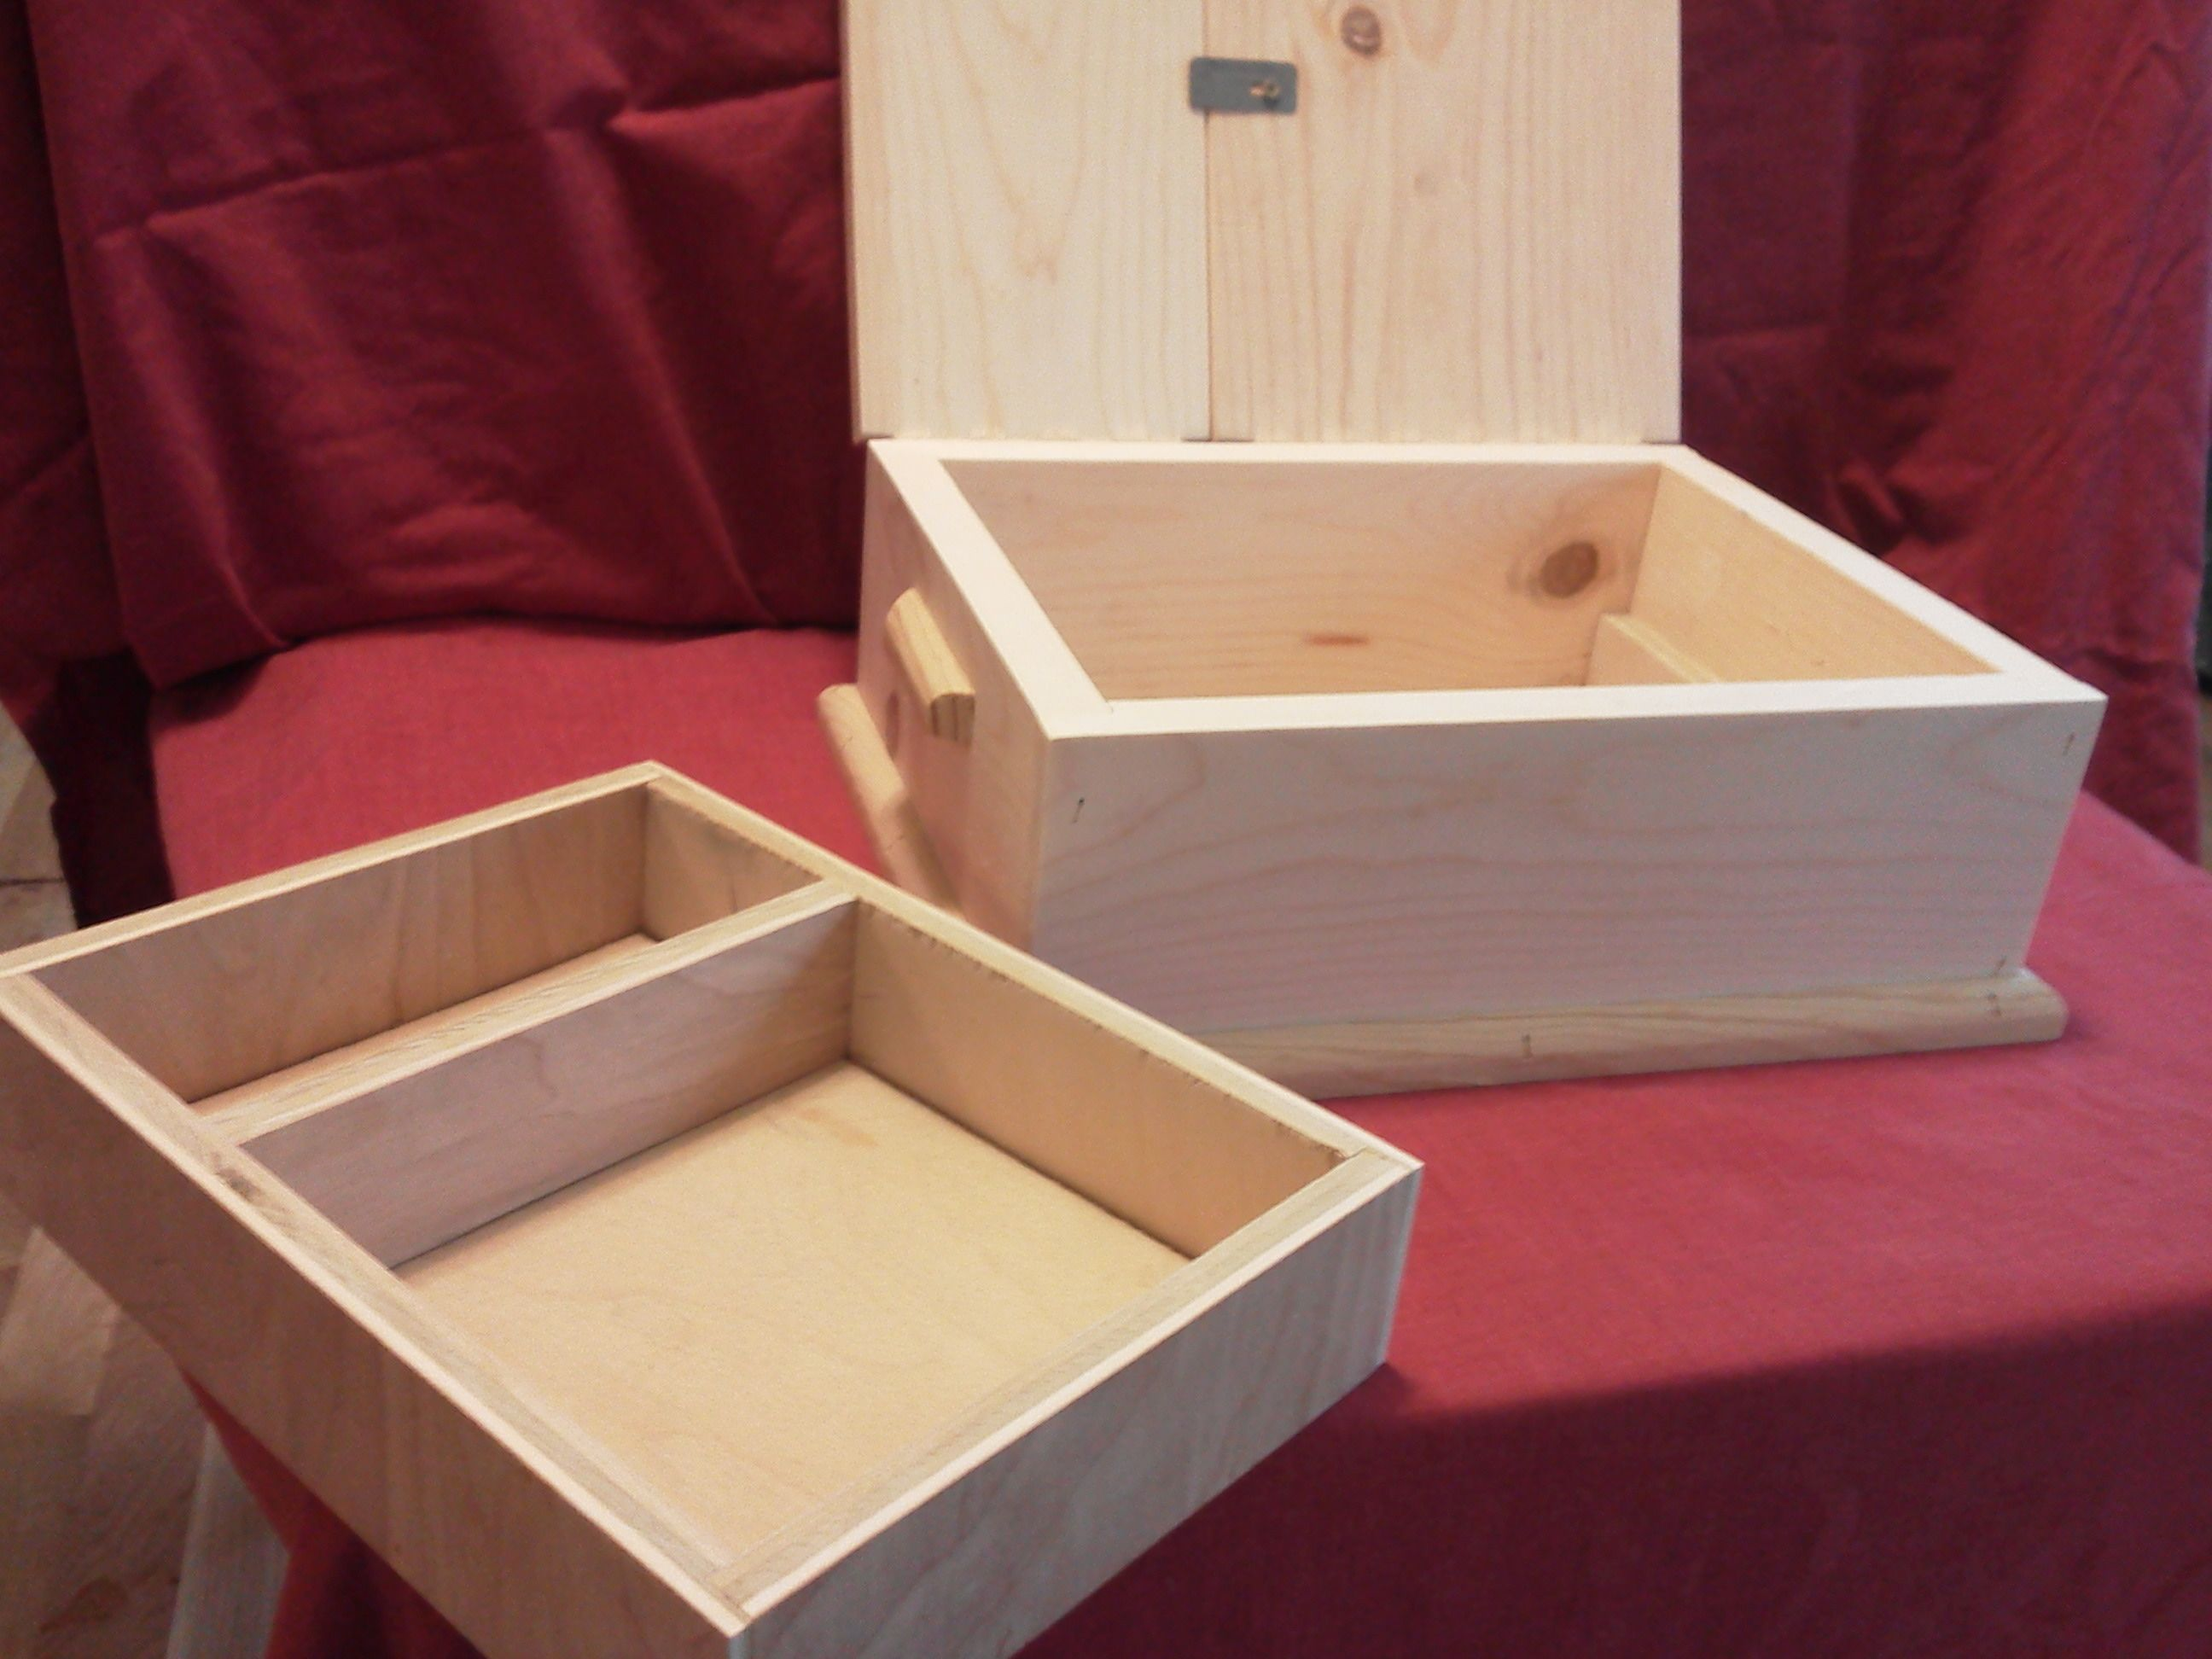 Jewelry Box Made Of 3 4 Inch Pine Tray Made Of 1 4 Inch Birch Plywood Exterior Dimensions 12 1 4 X 10 X 5 Inc Jewellery Box Making Birch Plywood Wood Crafts